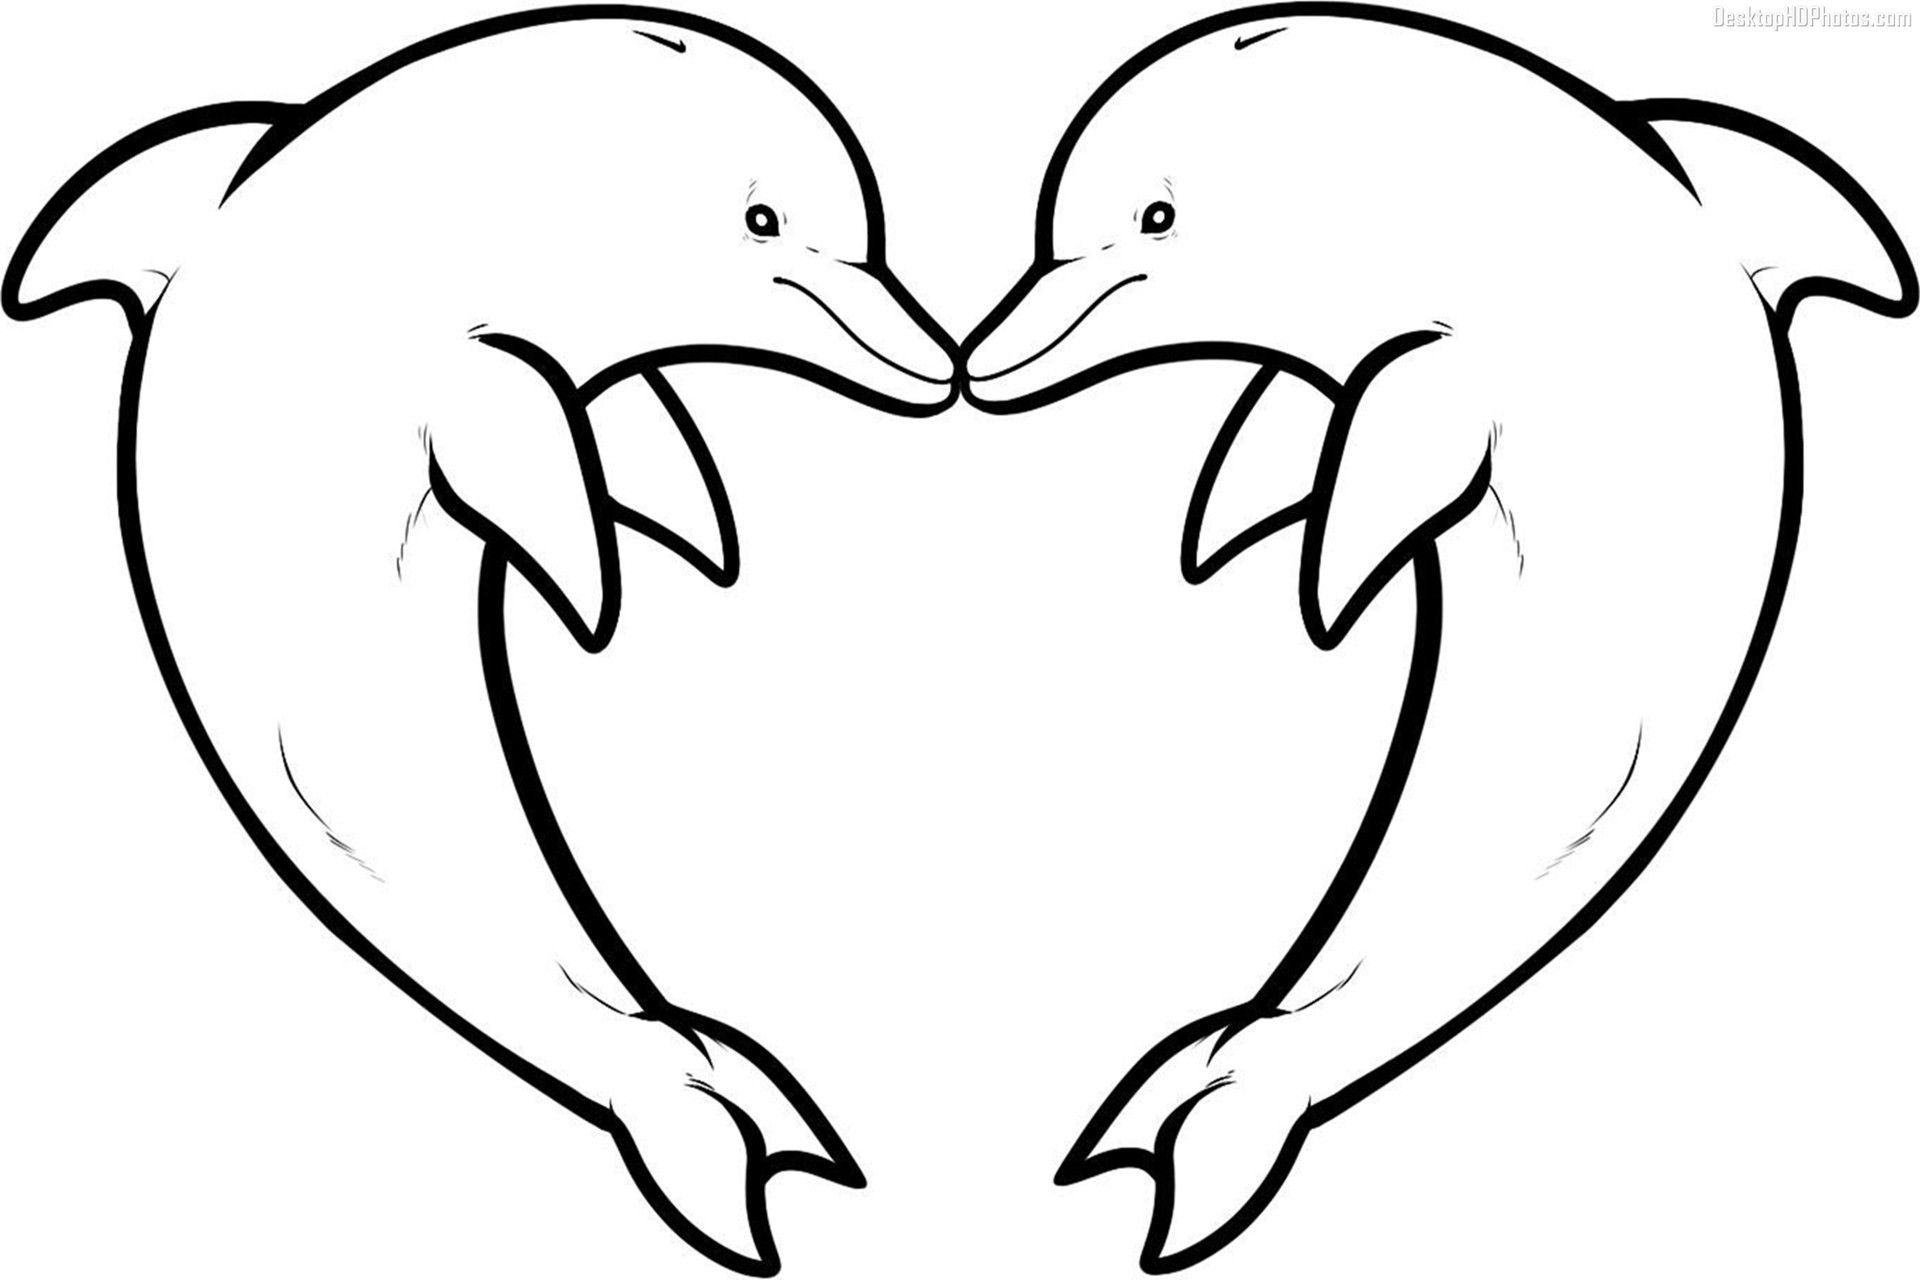 Unique Dolphin Pictures To Color Coloring Coloringpages Coloringpagesforkids Coloringpagesforad Dolphin Coloring Pages Dolphin Drawing Heart Coloring Pages